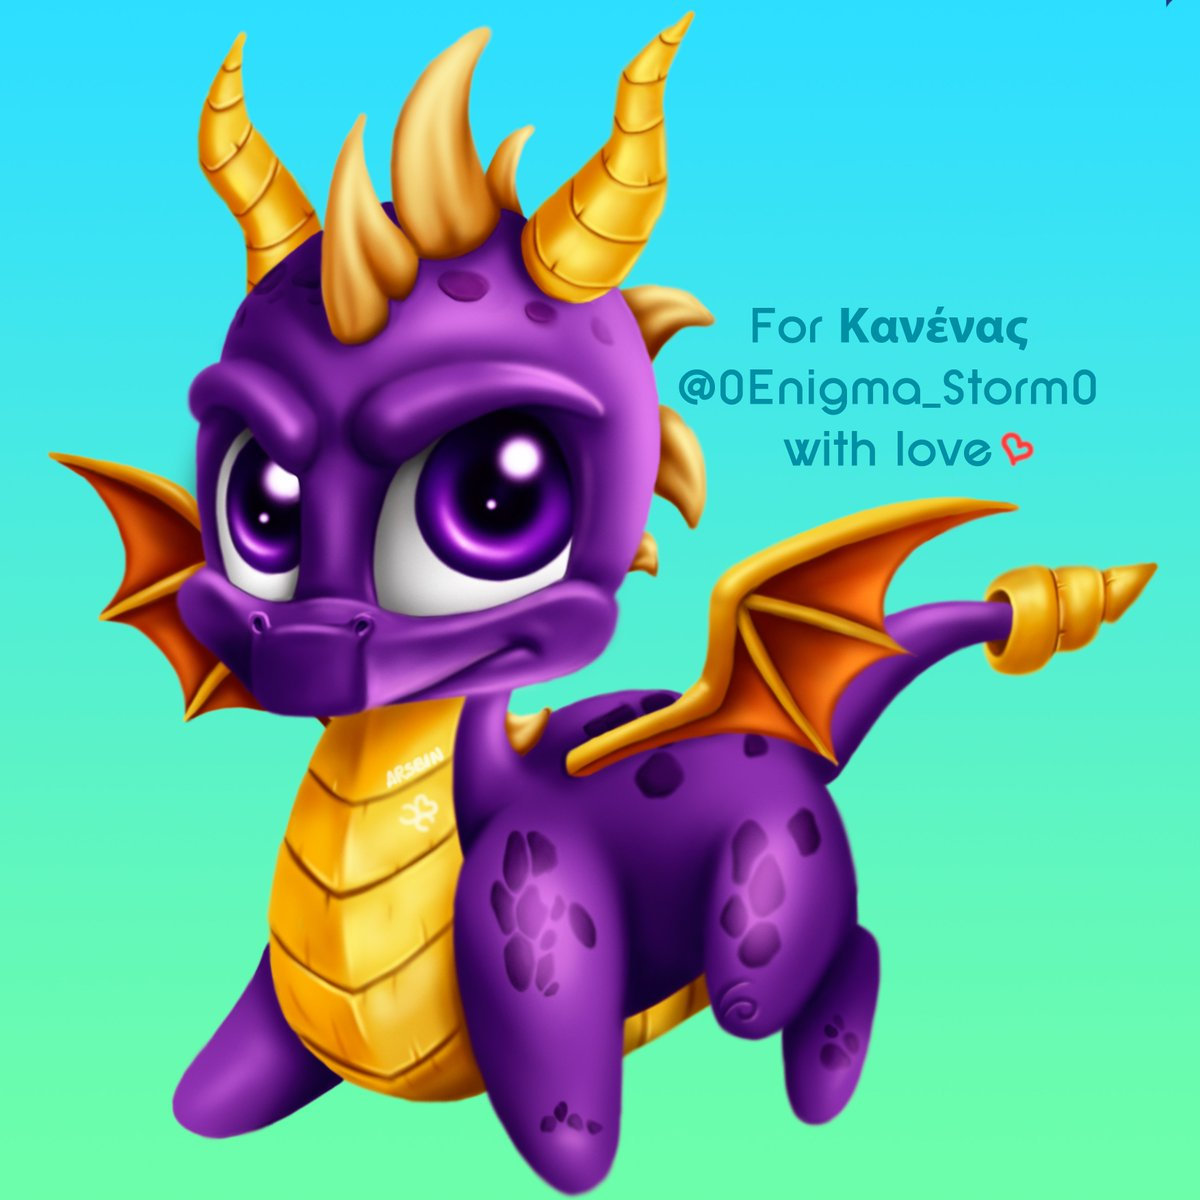 My chibi Spyro! @0Enigma_Storm0 requested him as the raffle prize  Hope you like my cute baby!   #SpyroTheDragon #Spyro #chibi @SpyroUniverse<br>http://pic.twitter.com/A2IPUzvMRK